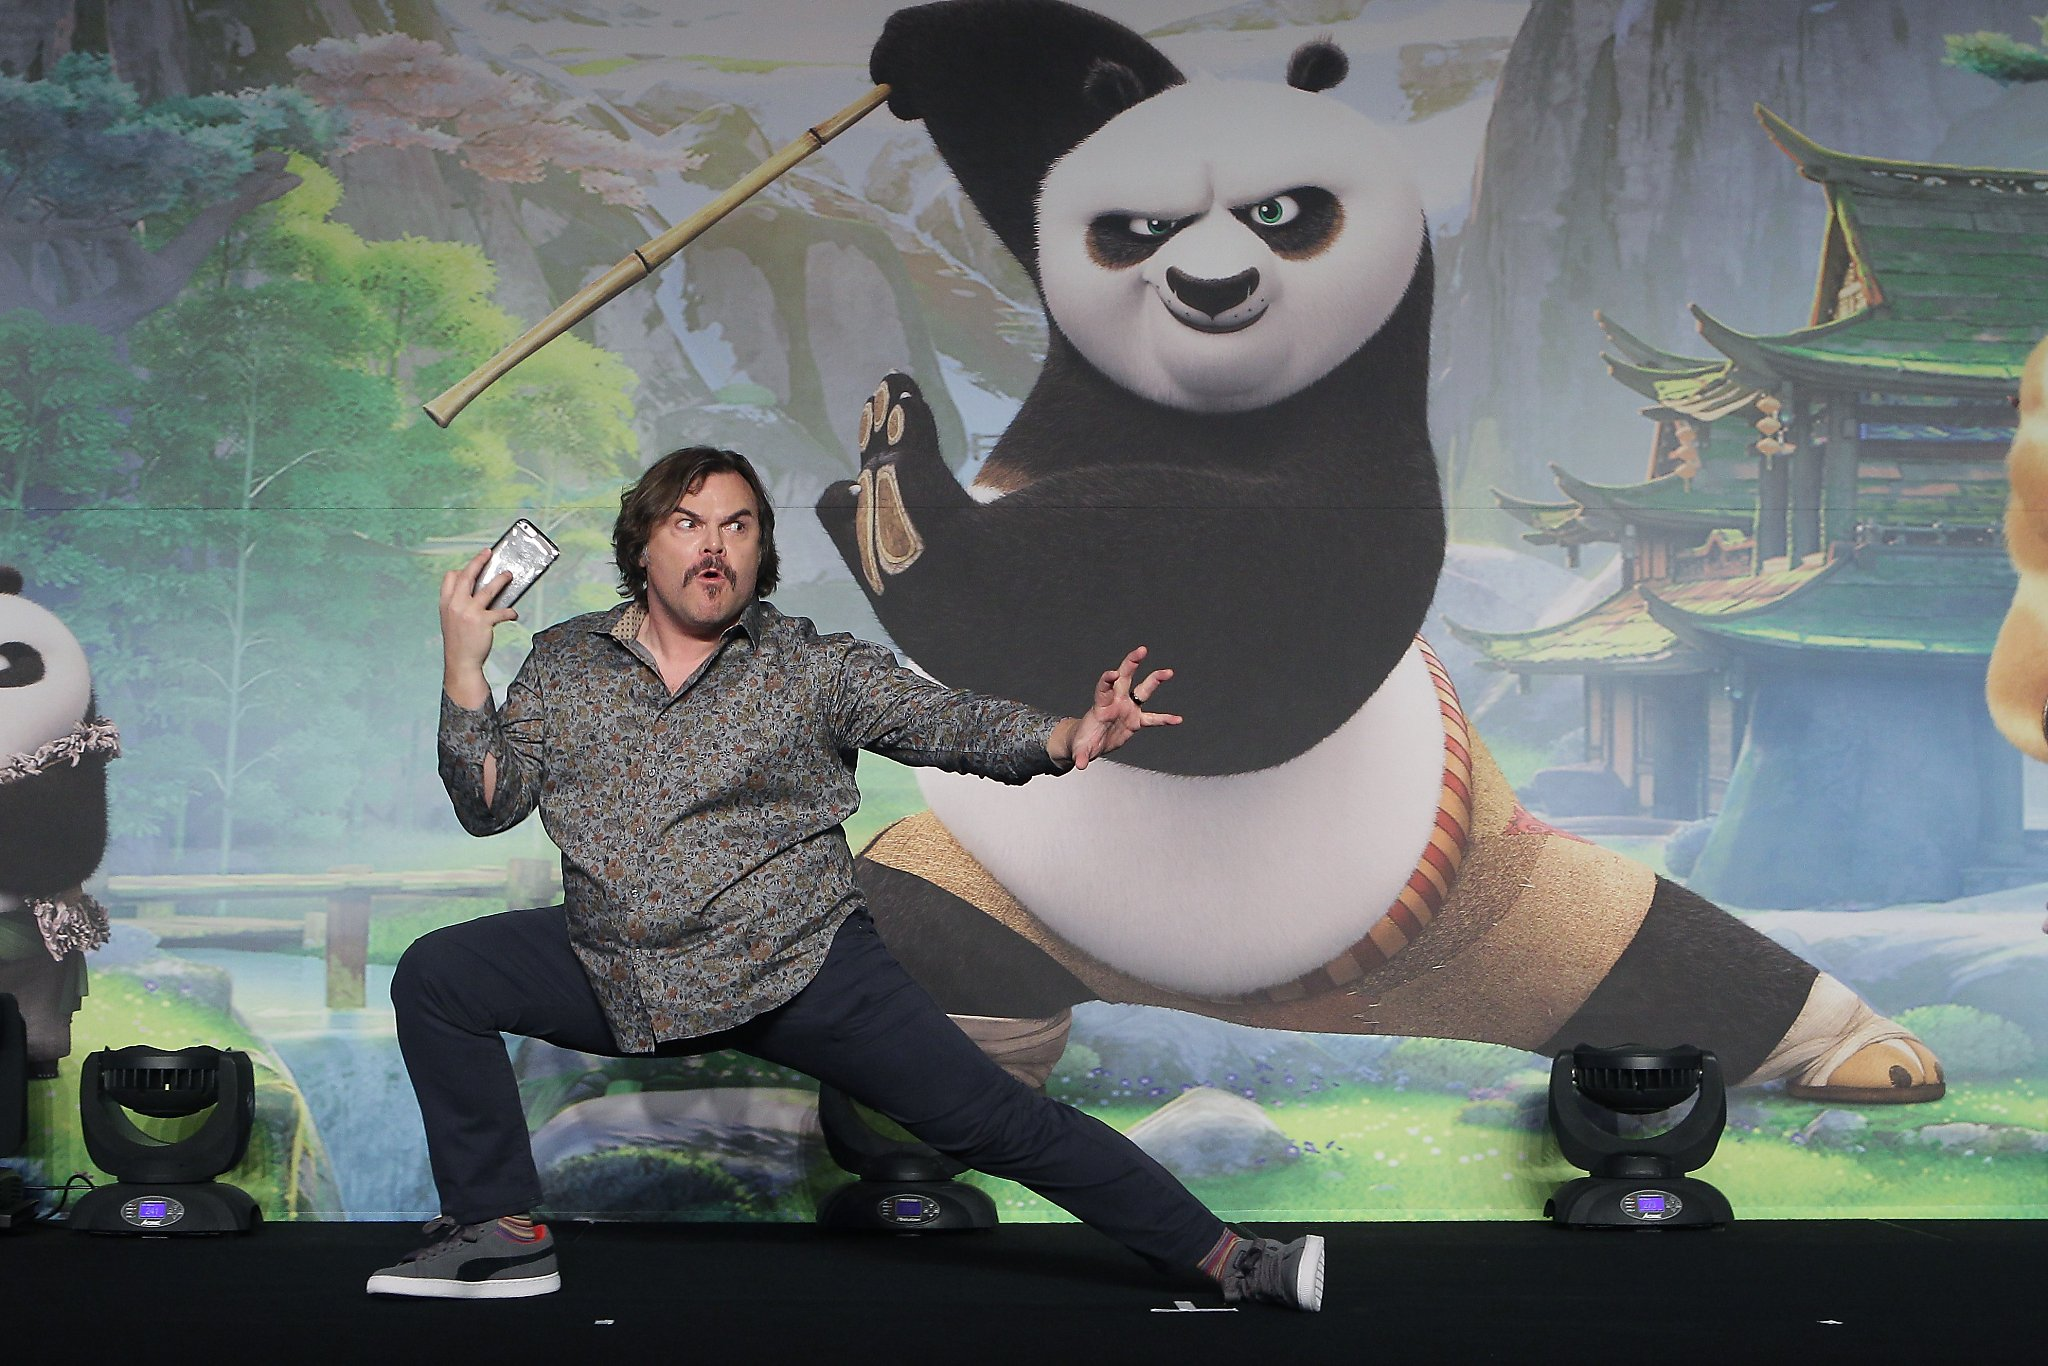 another kung fu round for fans who demand another 'panda' - sfgate